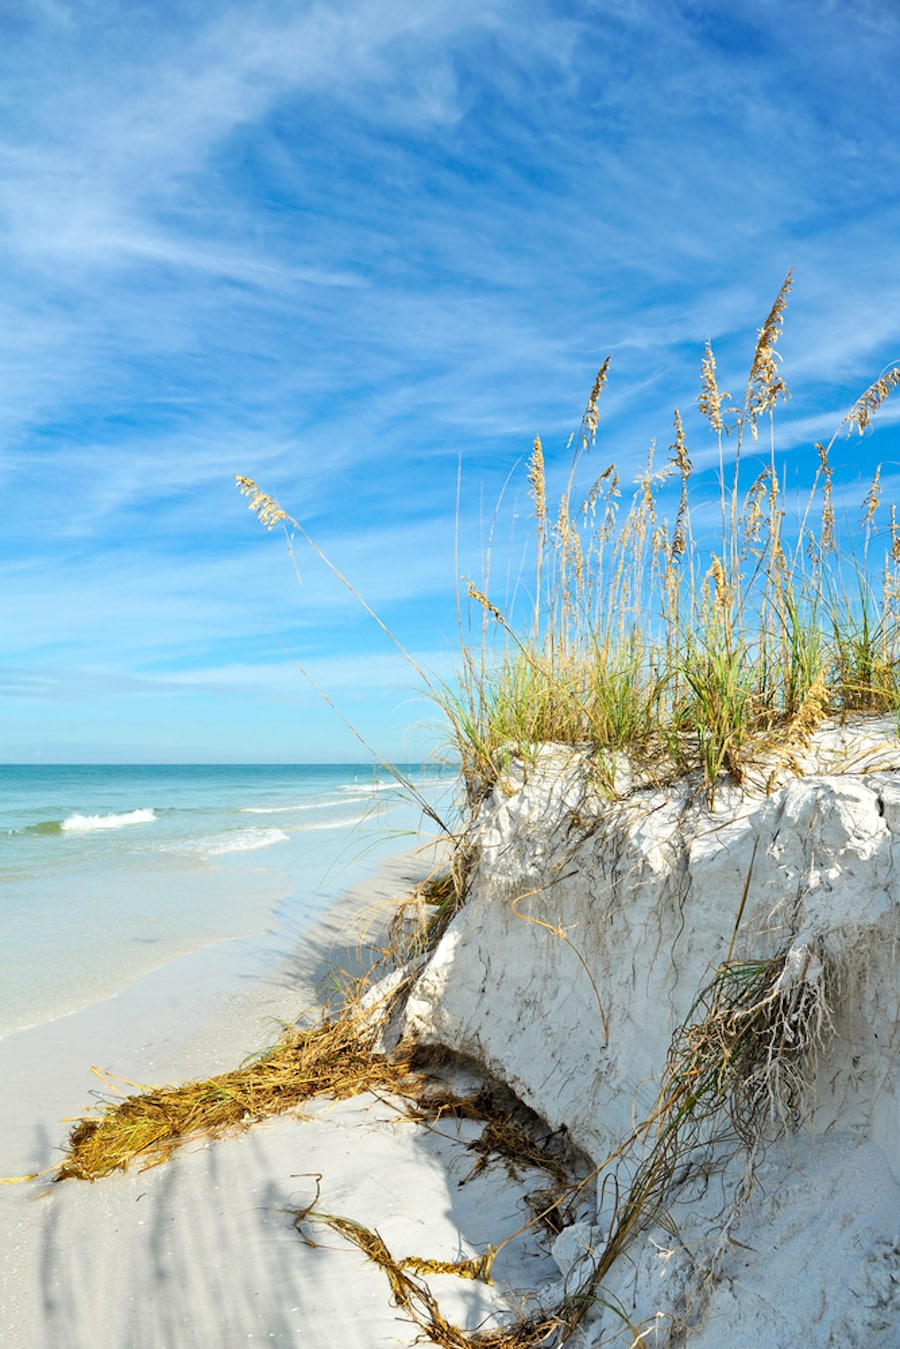 Beautiful beach showing anna maria island romantic getaway spots.